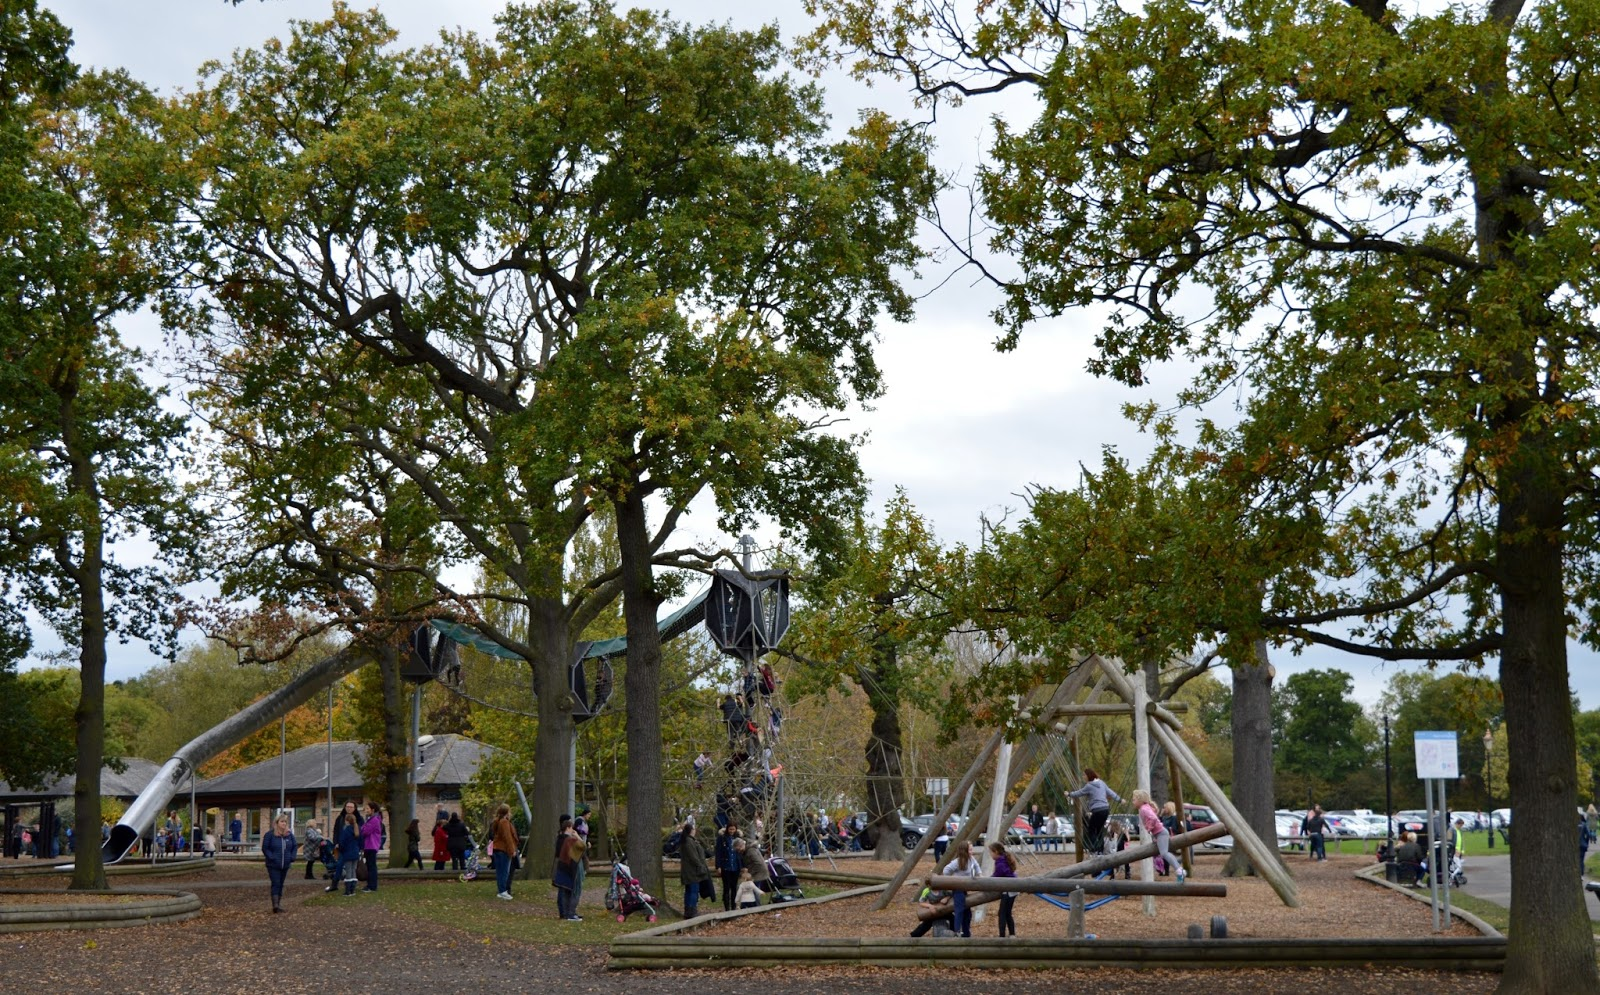 Half Term Hocus Pocus at Preston Park | The North East's very own Diagon Alley - outdoor adventure playground